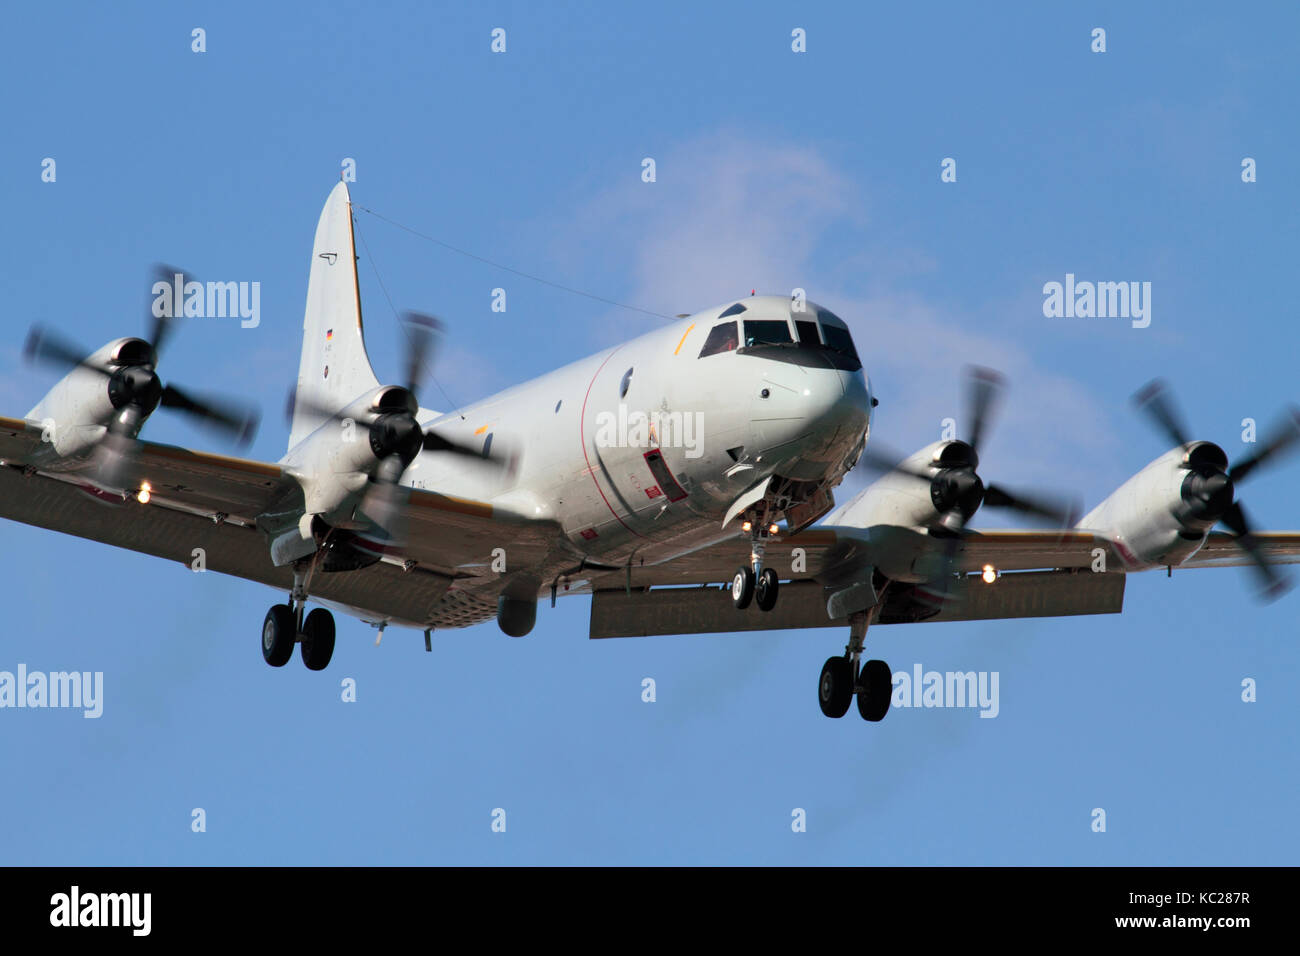 Military aviation. German Navy P-3C Orion four-engine turboprop maritime patrol aircraft on approach. Front view - Stock Image